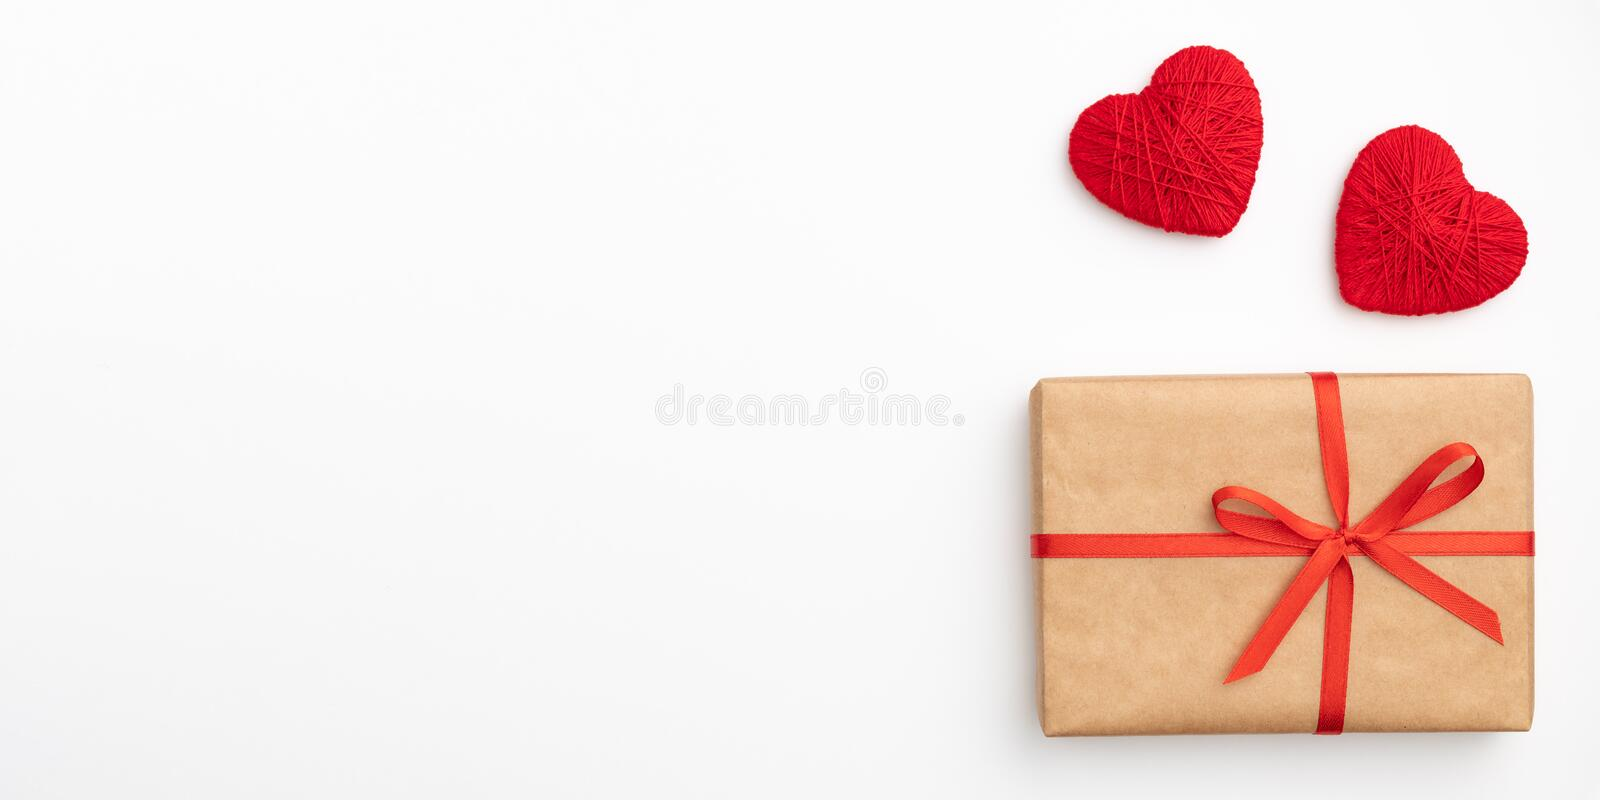 Decoration valentine`s day on table desk top view with present box. Flat lay composition of red heart and craft paper gift box. With red bow ribbon isolated royalty free stock image